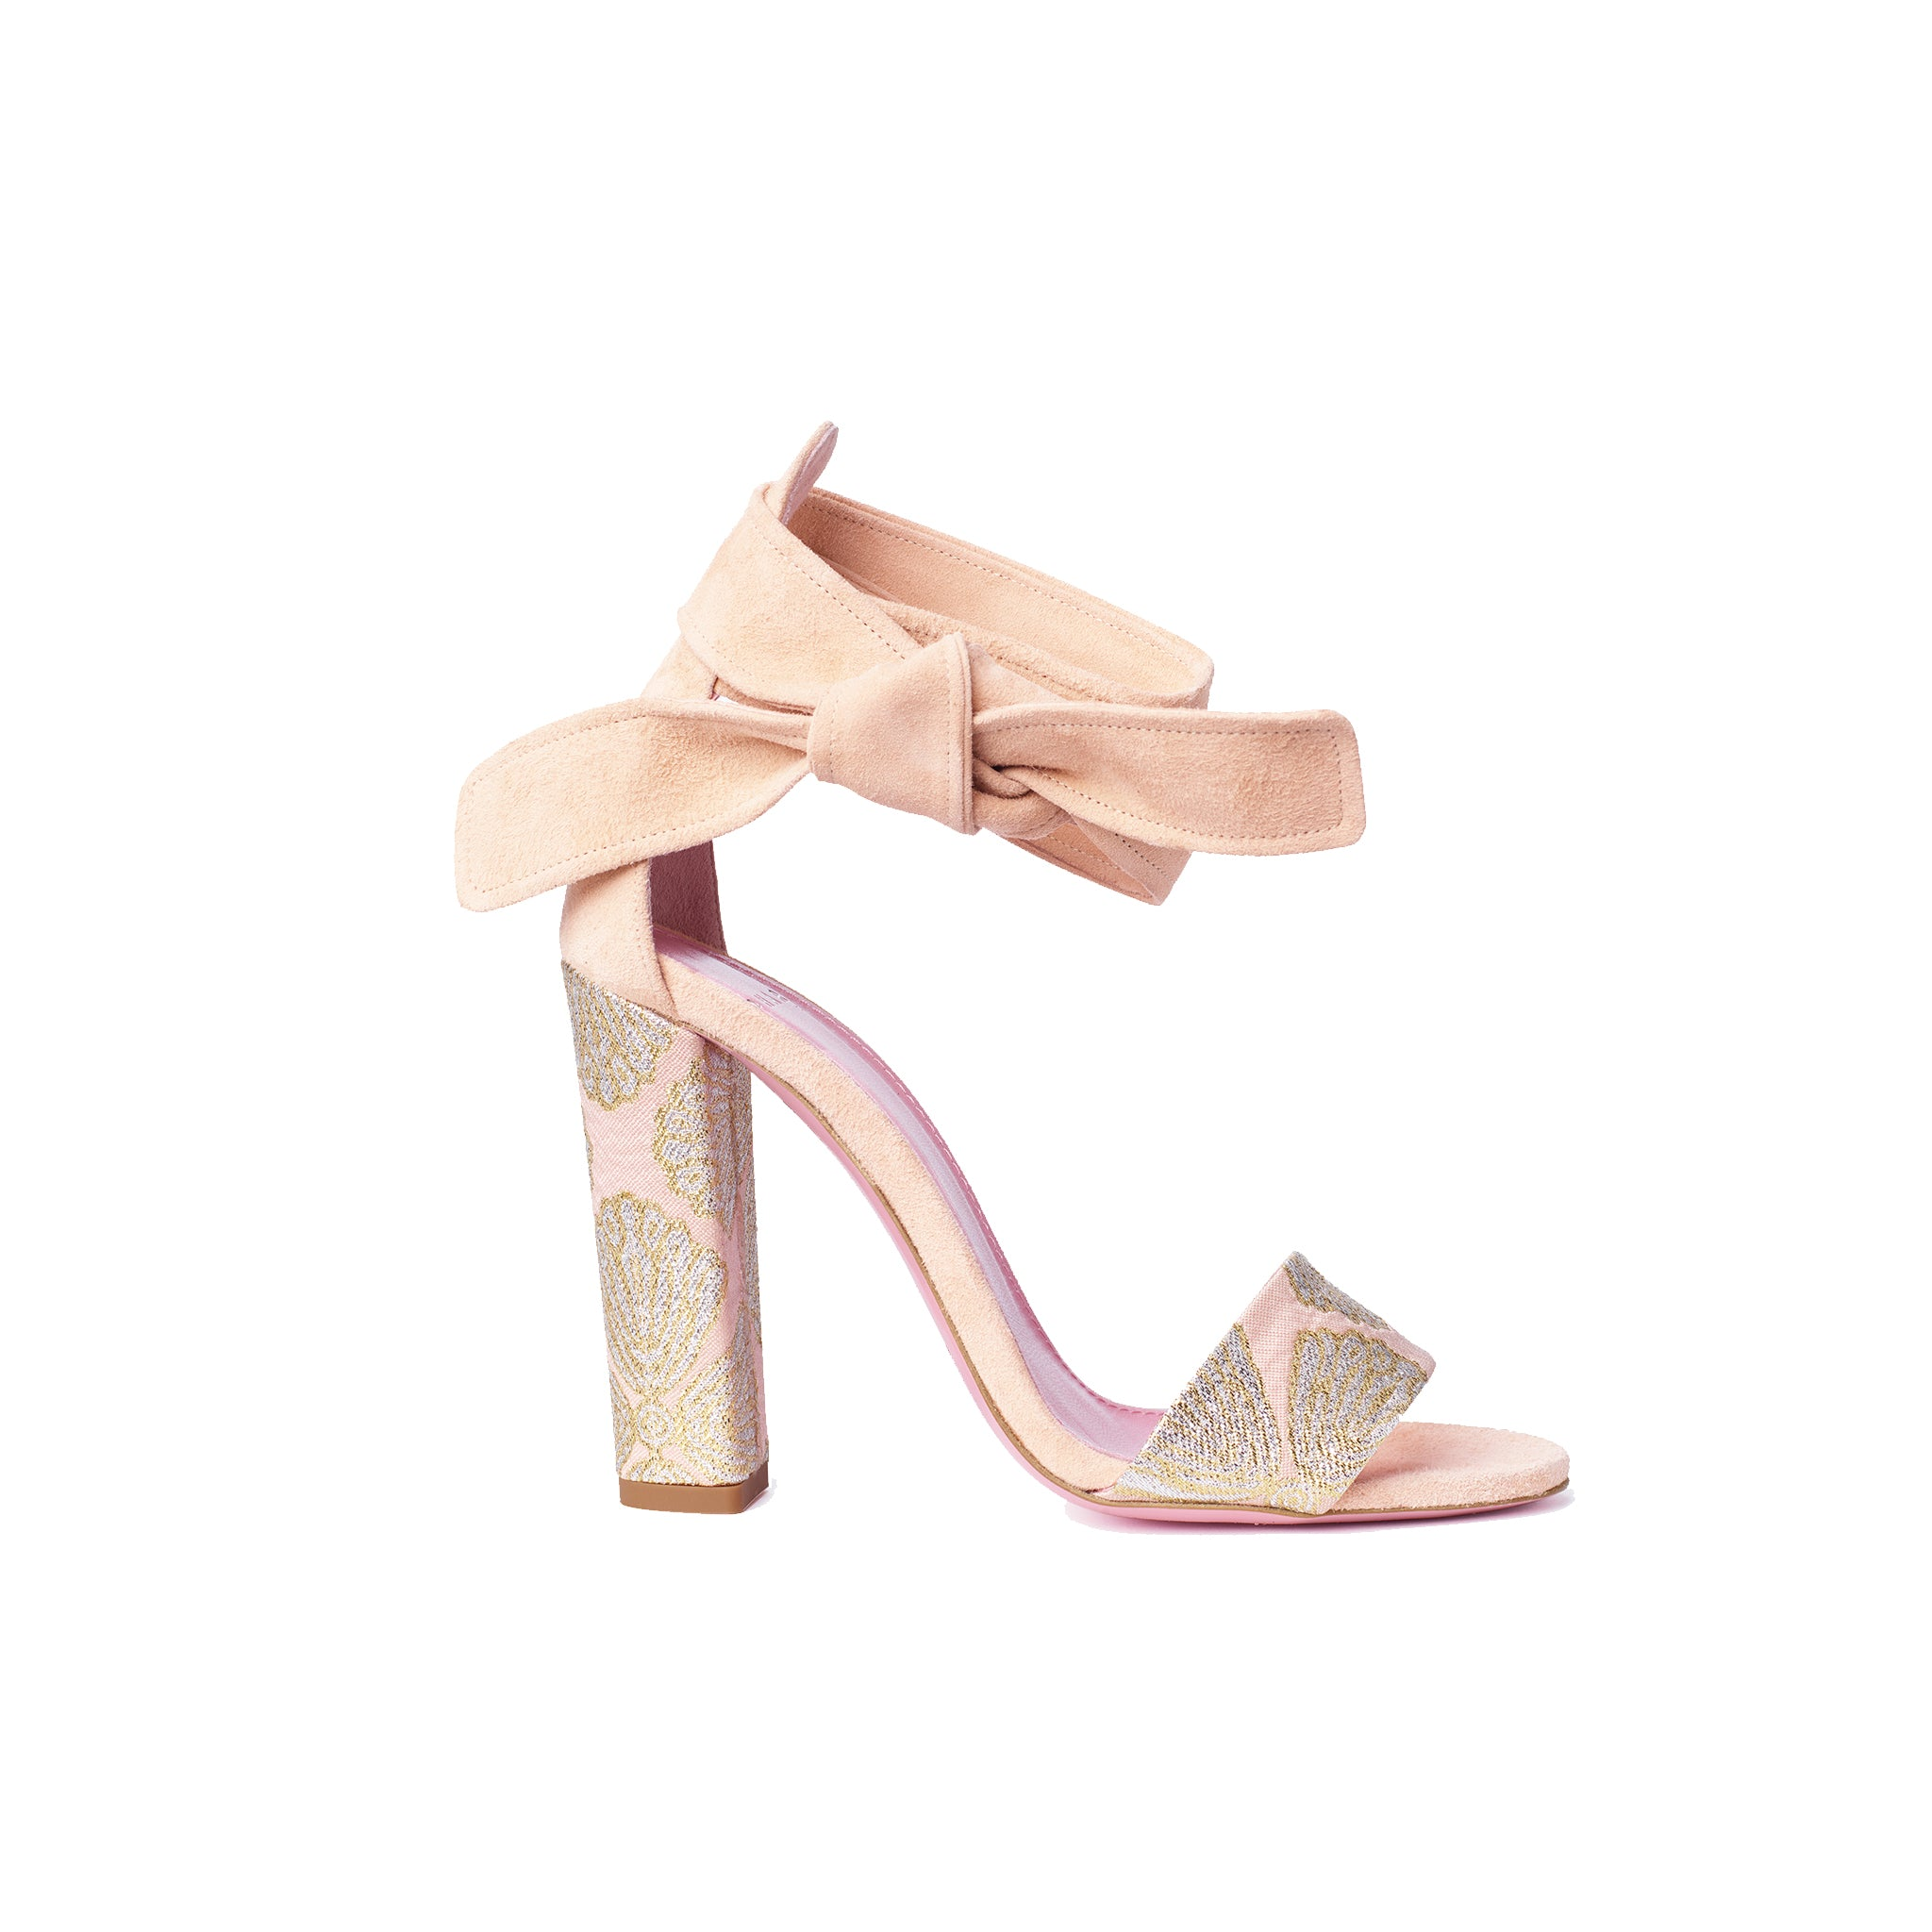 Phare Ankle tie block heel with metallic brocade heel and soft peach suede